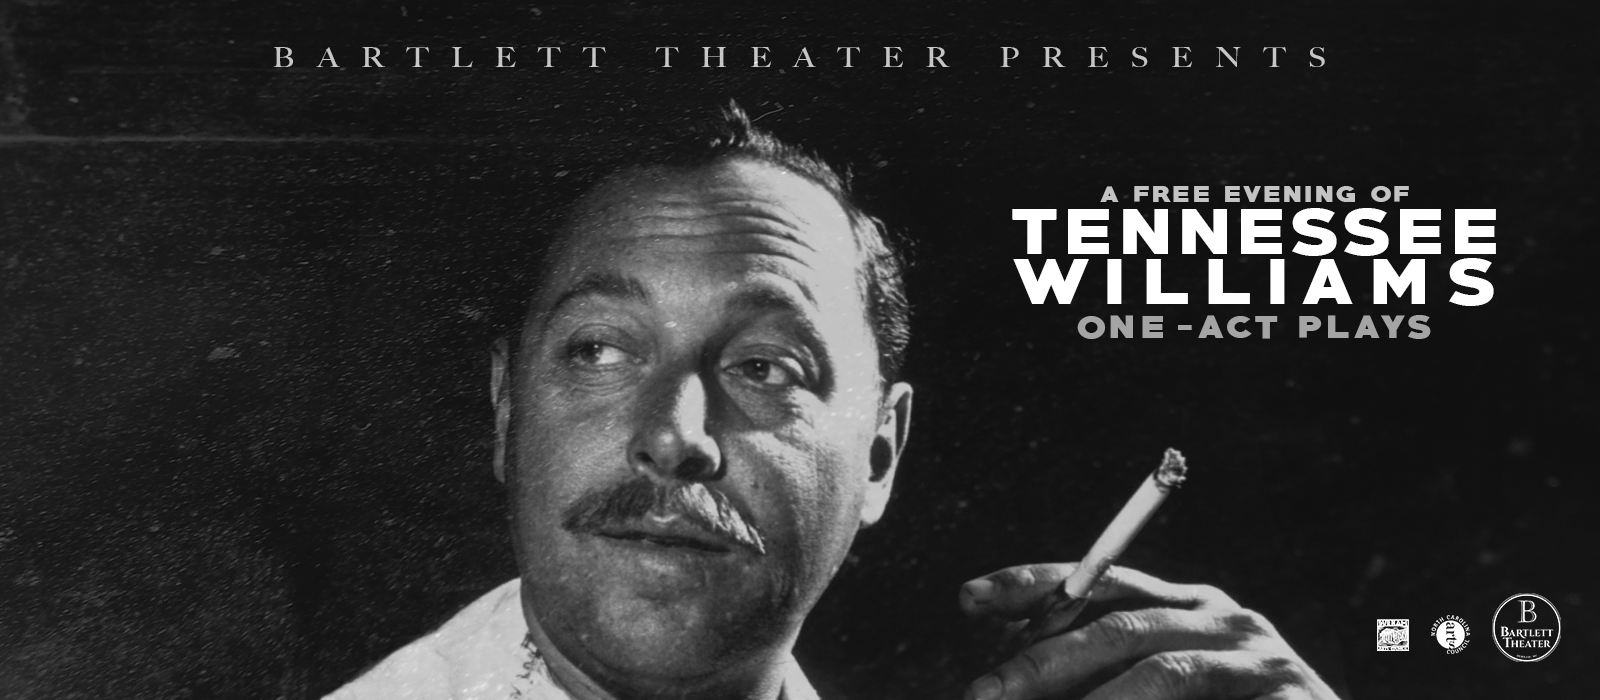 27 Wagons Full of Cotton And Other One-Act Plays by Tennessee Williams